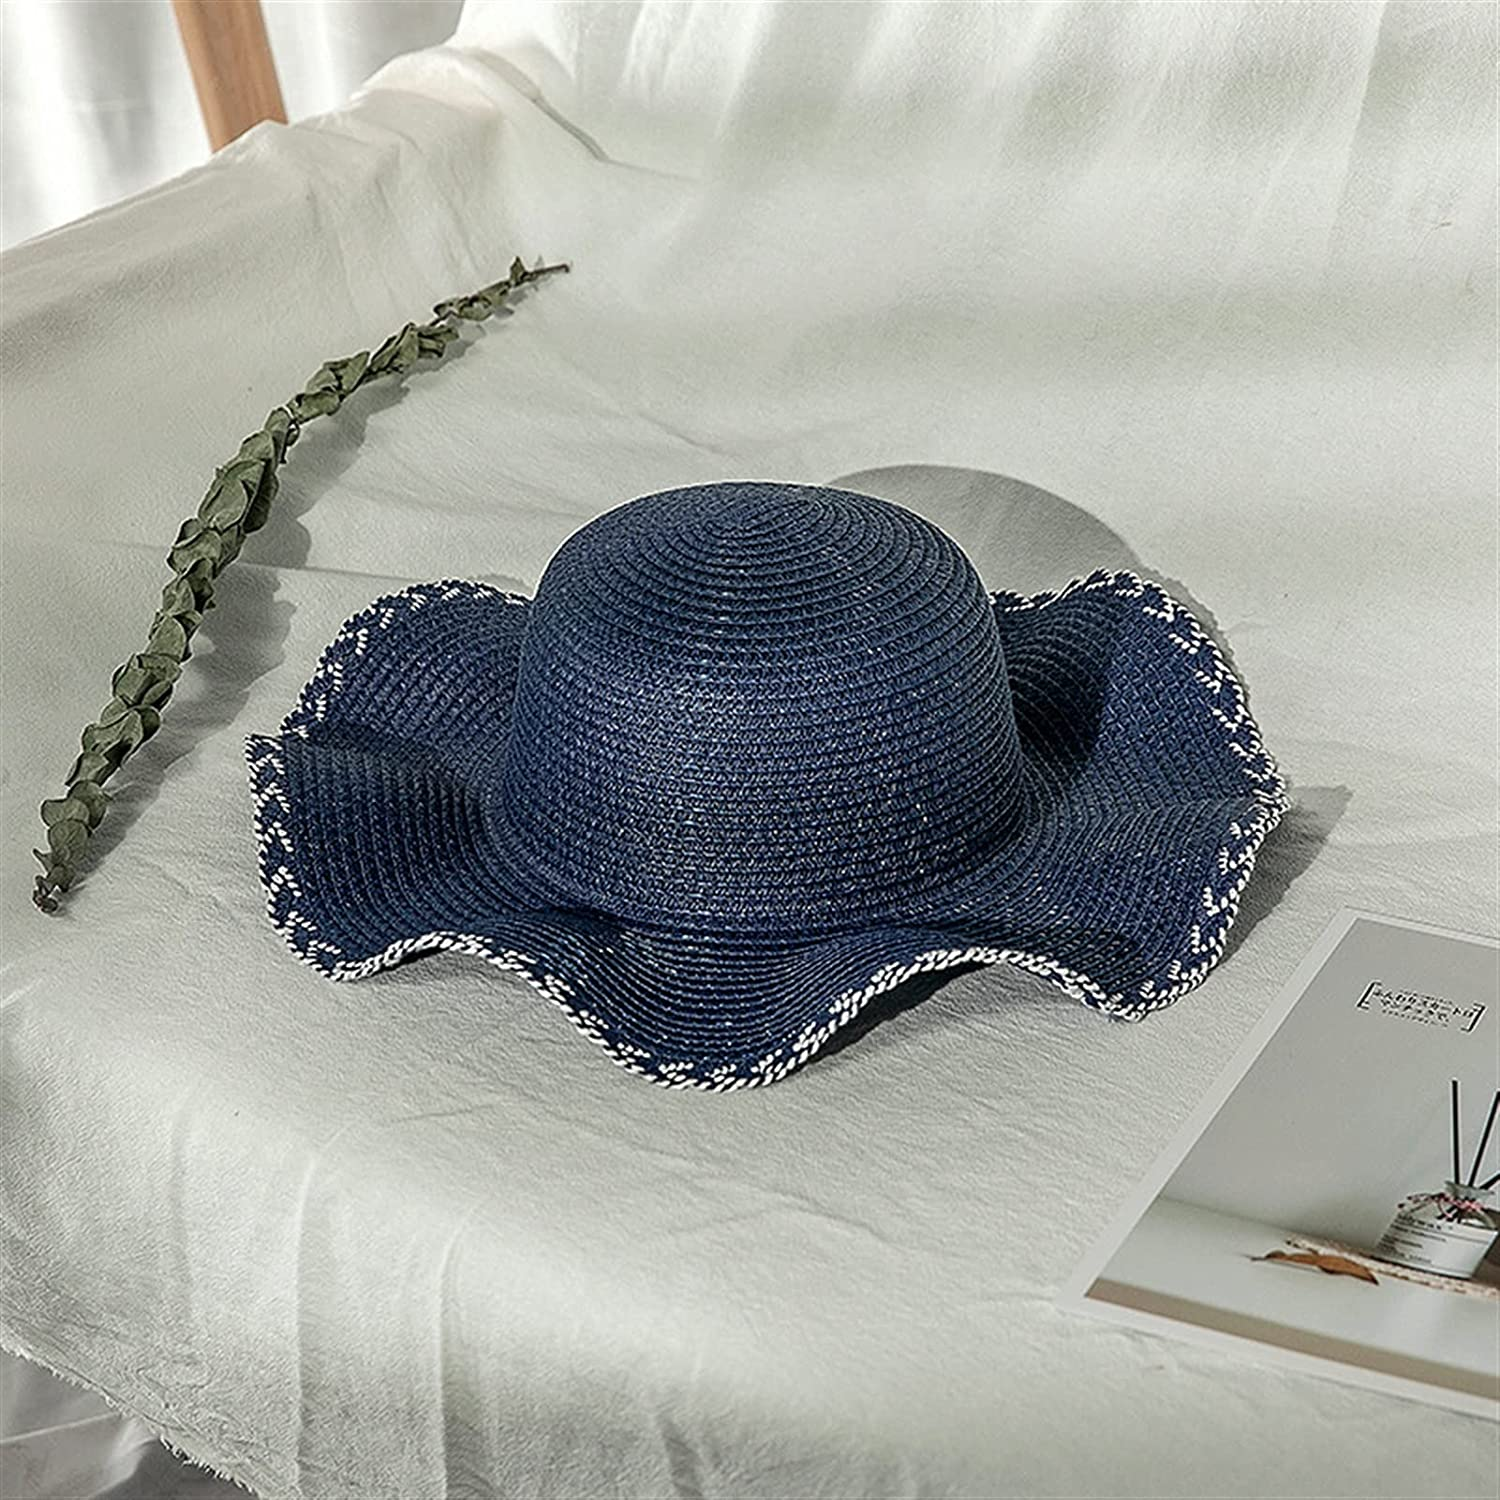 JJSNN Sun Max 56% OFF Hat Foldable Straw hat Max 62% OFF for Solar Br Protection Women